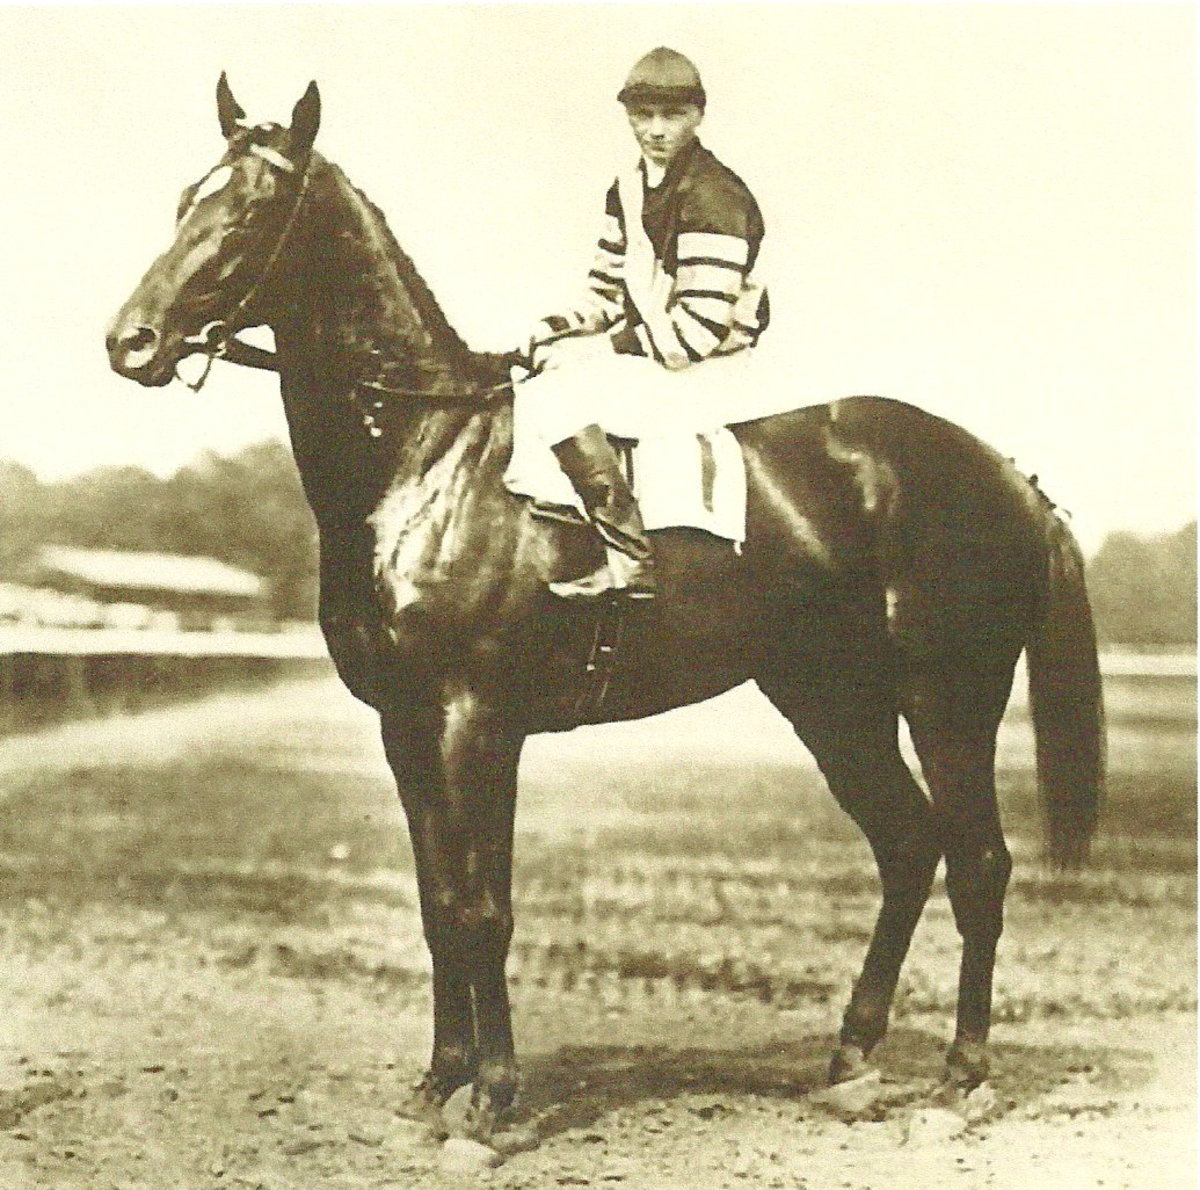 Man o' War, one of America's most famous racehorses, didn't run in the Kentucky Derby.